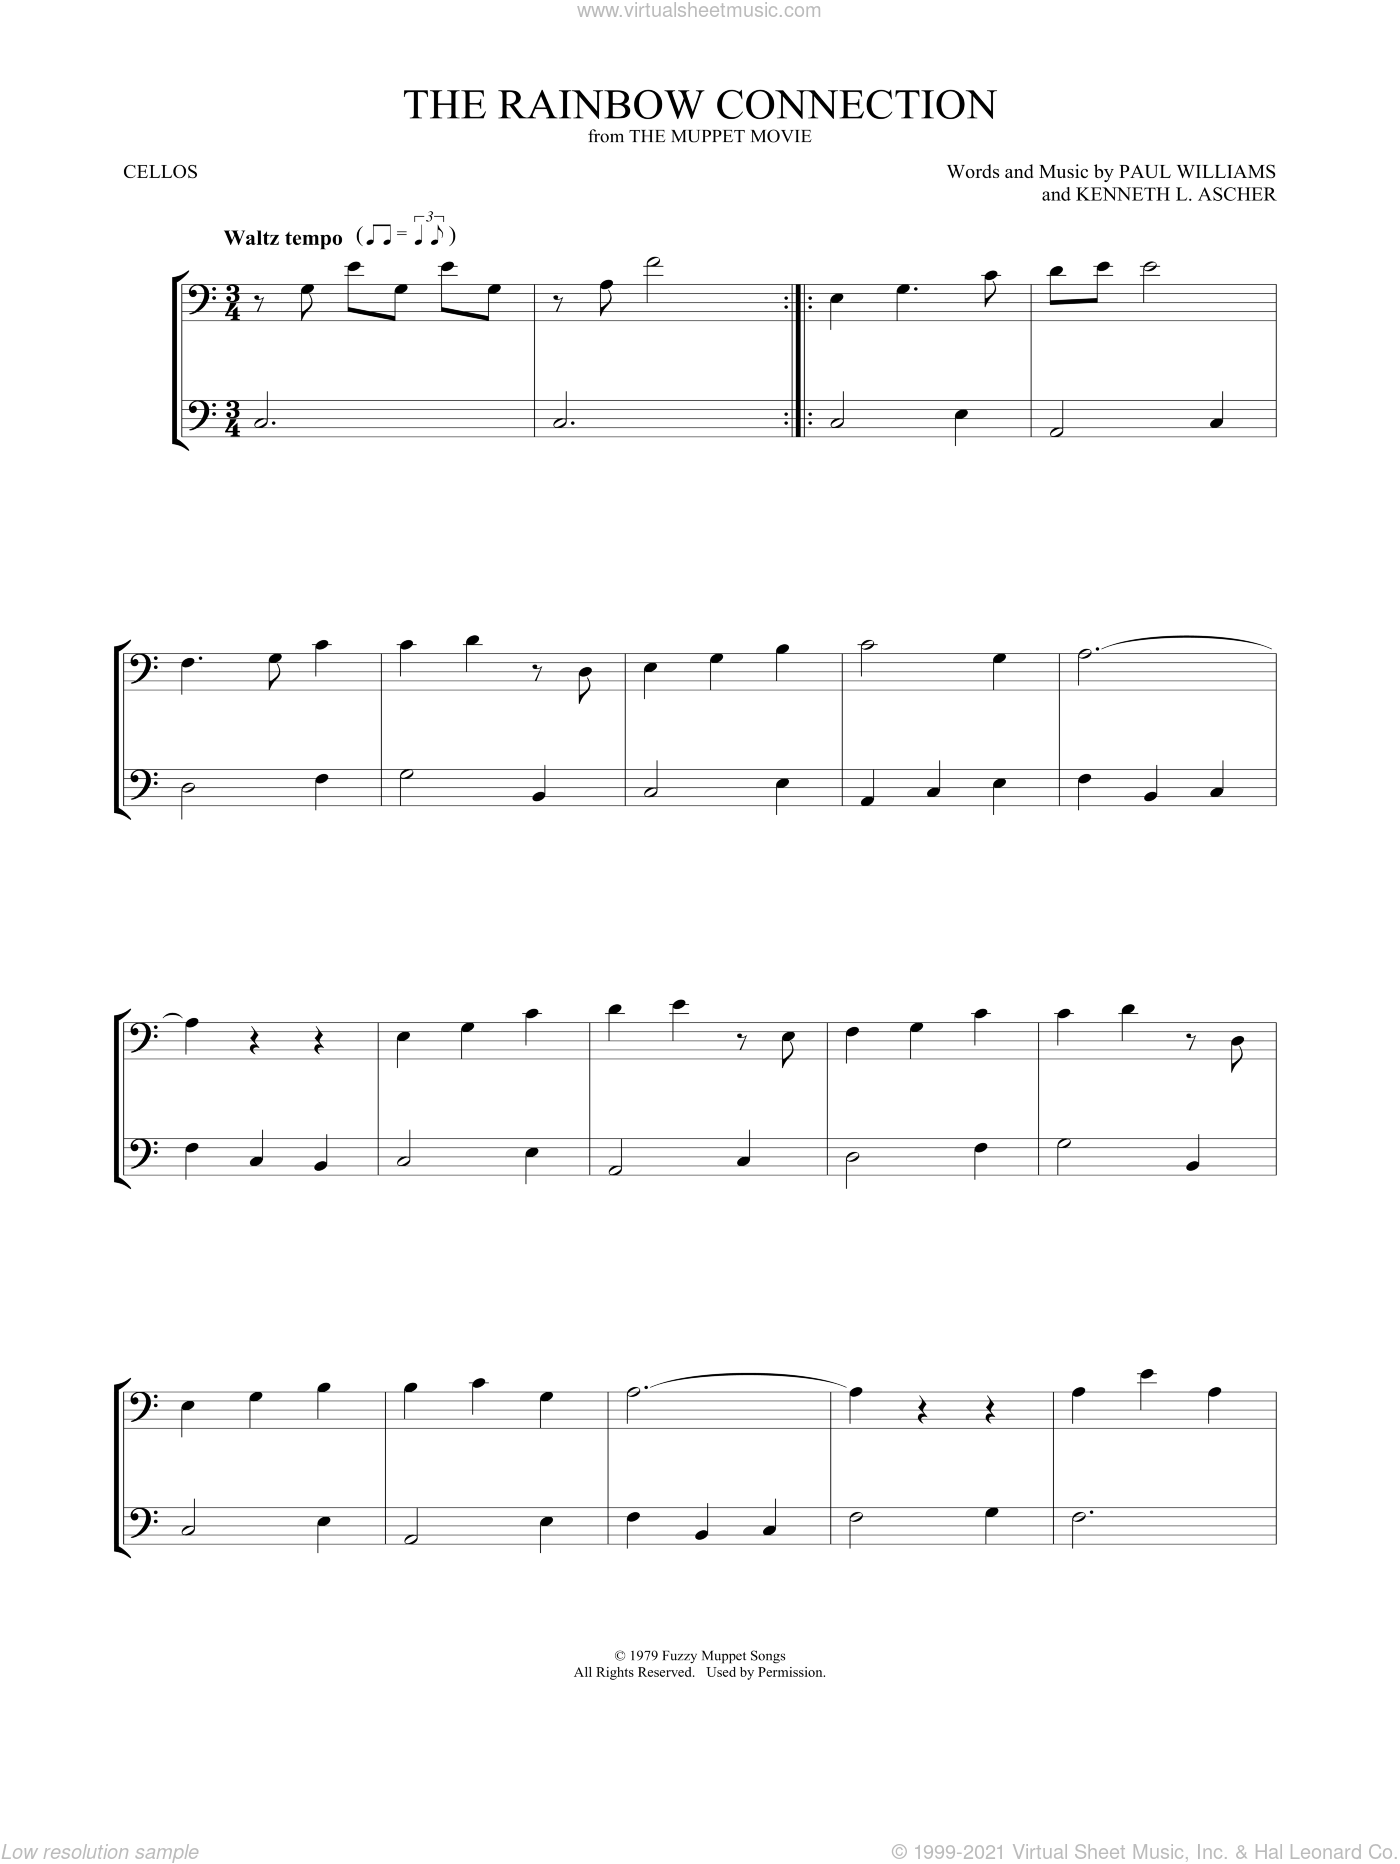 The Rainbow Connection sheet music for two cellos (duet, duets) by Paul Williams and Kenneth L. Ascher, intermediate skill level